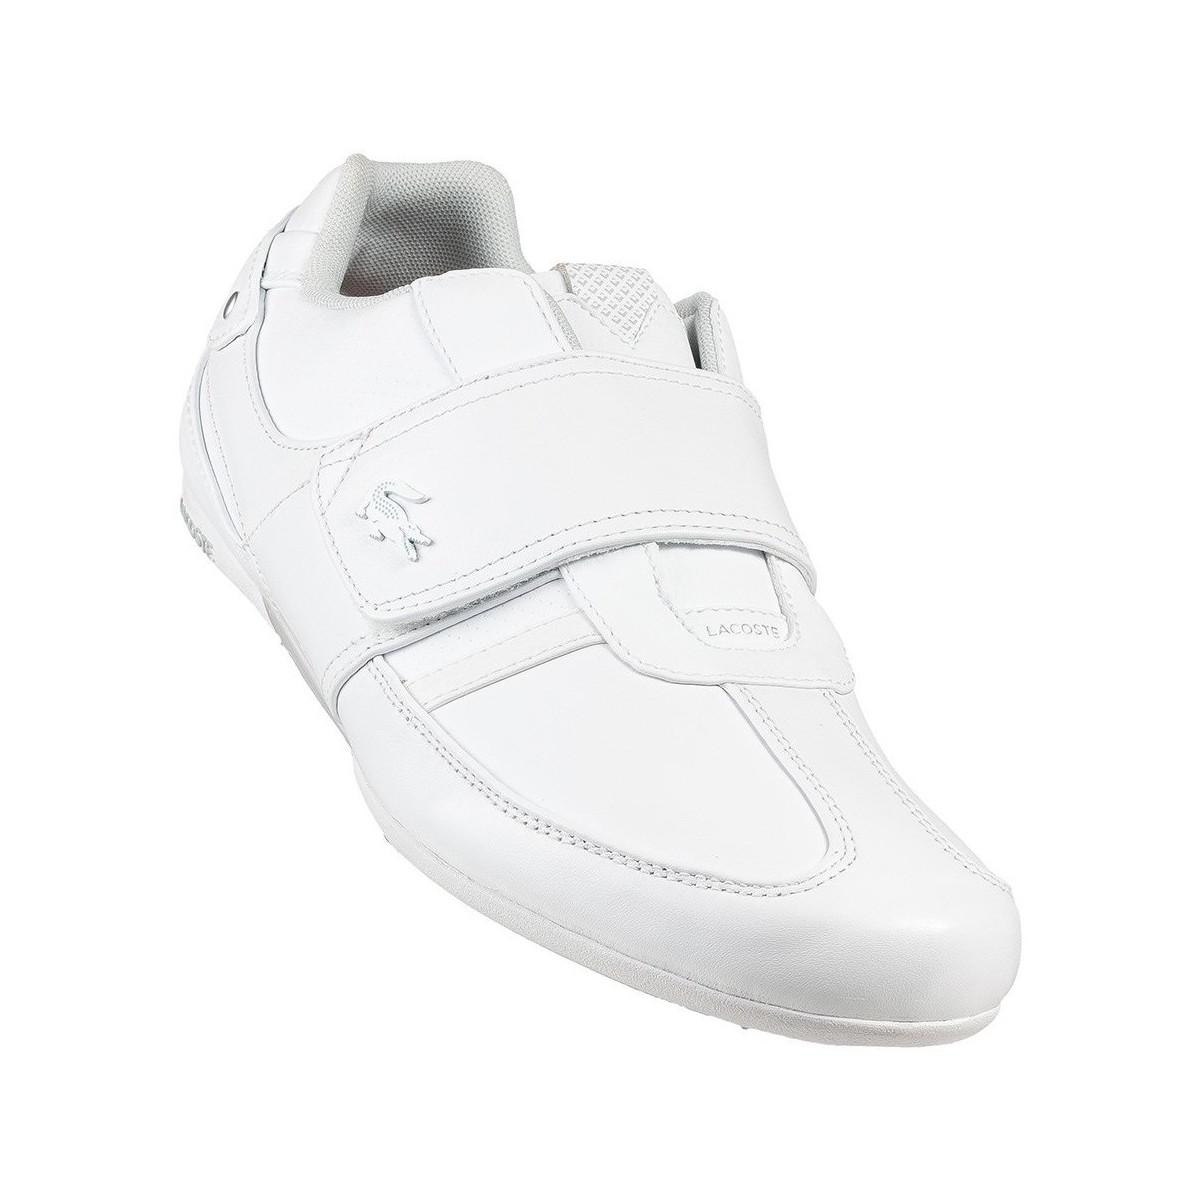 da505bc4308fb6 Lacoste Protected Prm Us Spm Men s Shoes (trainers) In White in ...